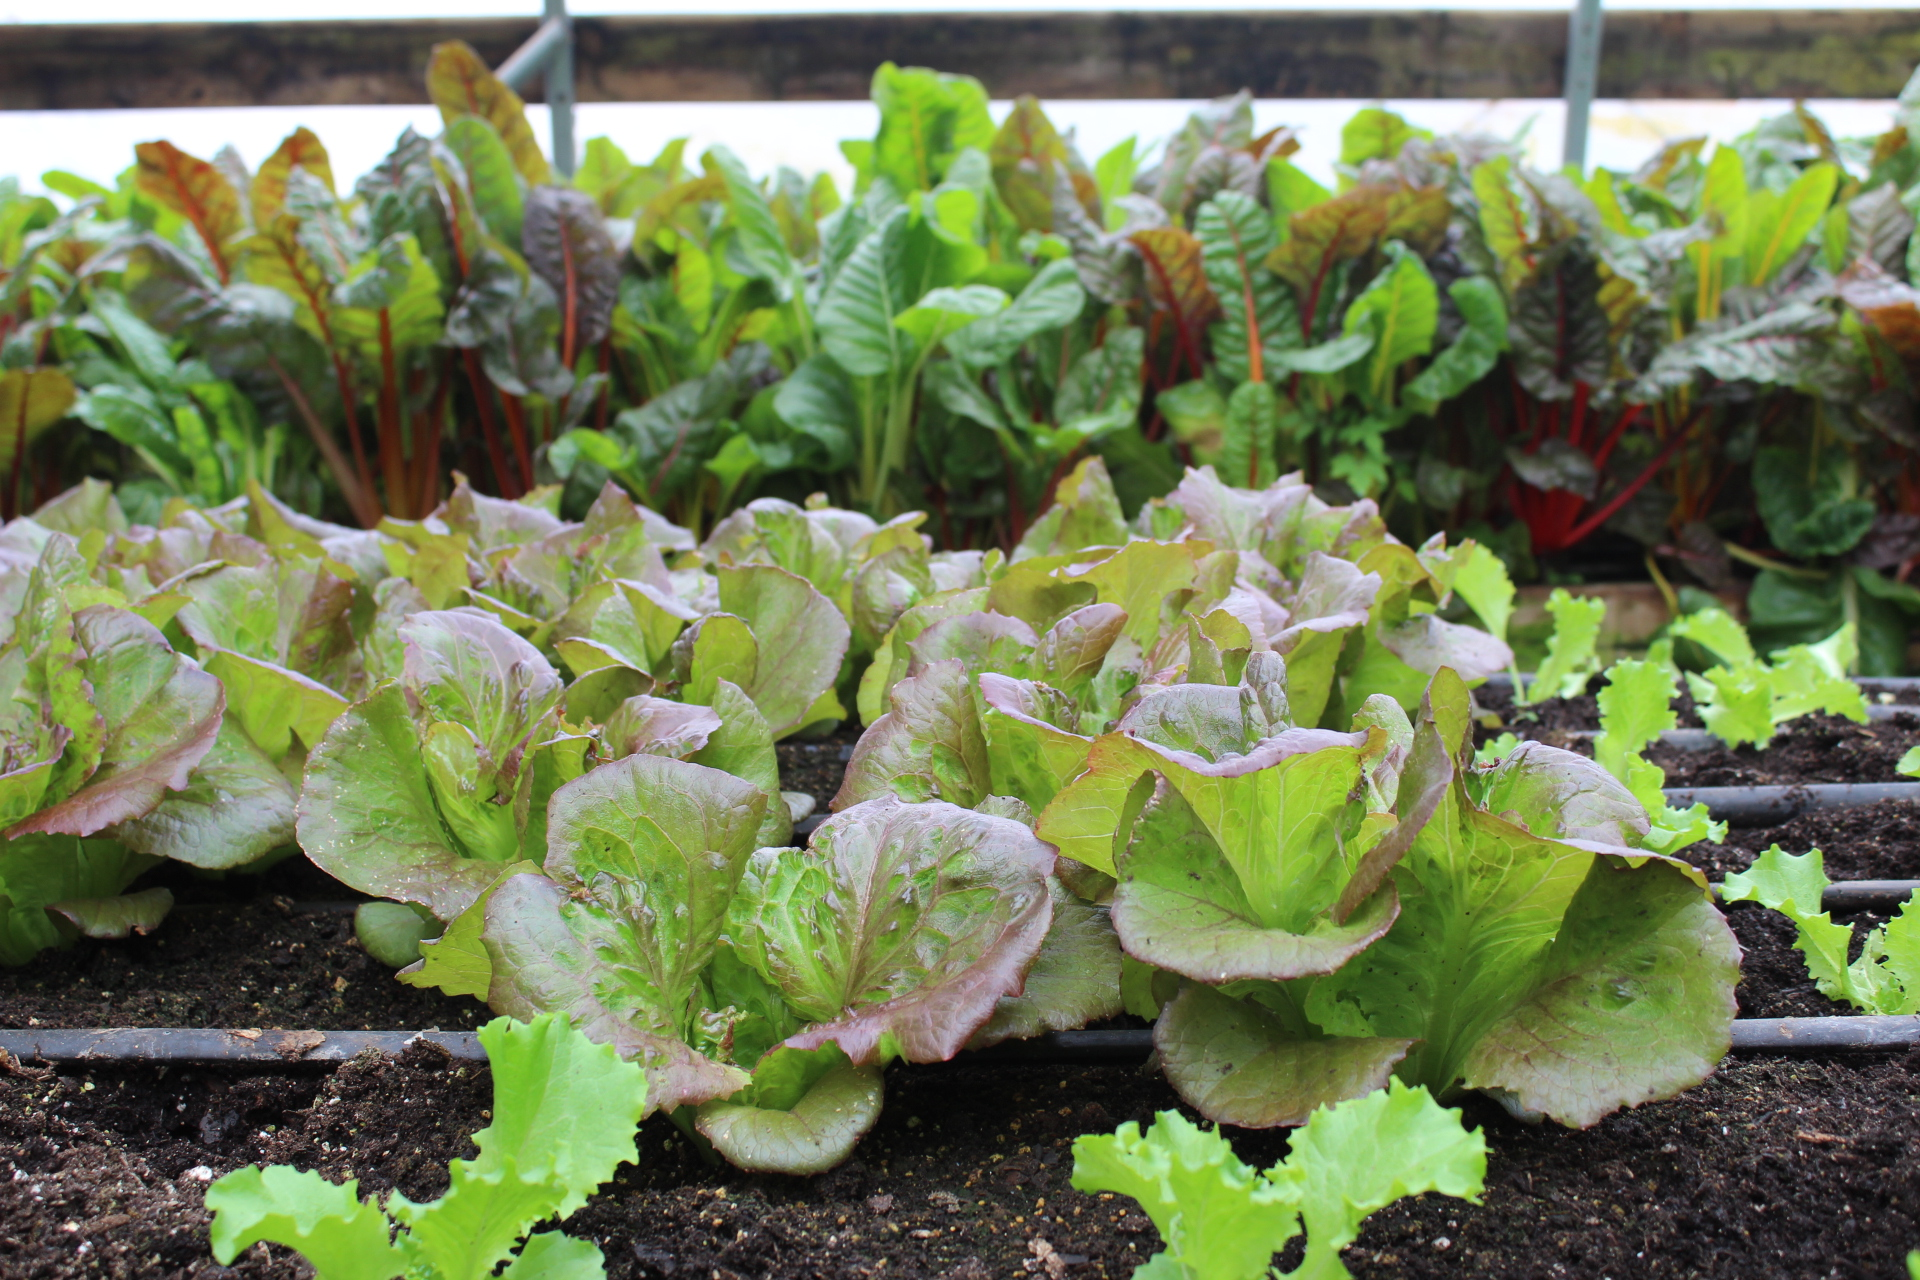 Lettuce and leafy greens growing year-round in the greenhouses. The largest buyer of these mixes is local Brewing Company, Latitude 42.